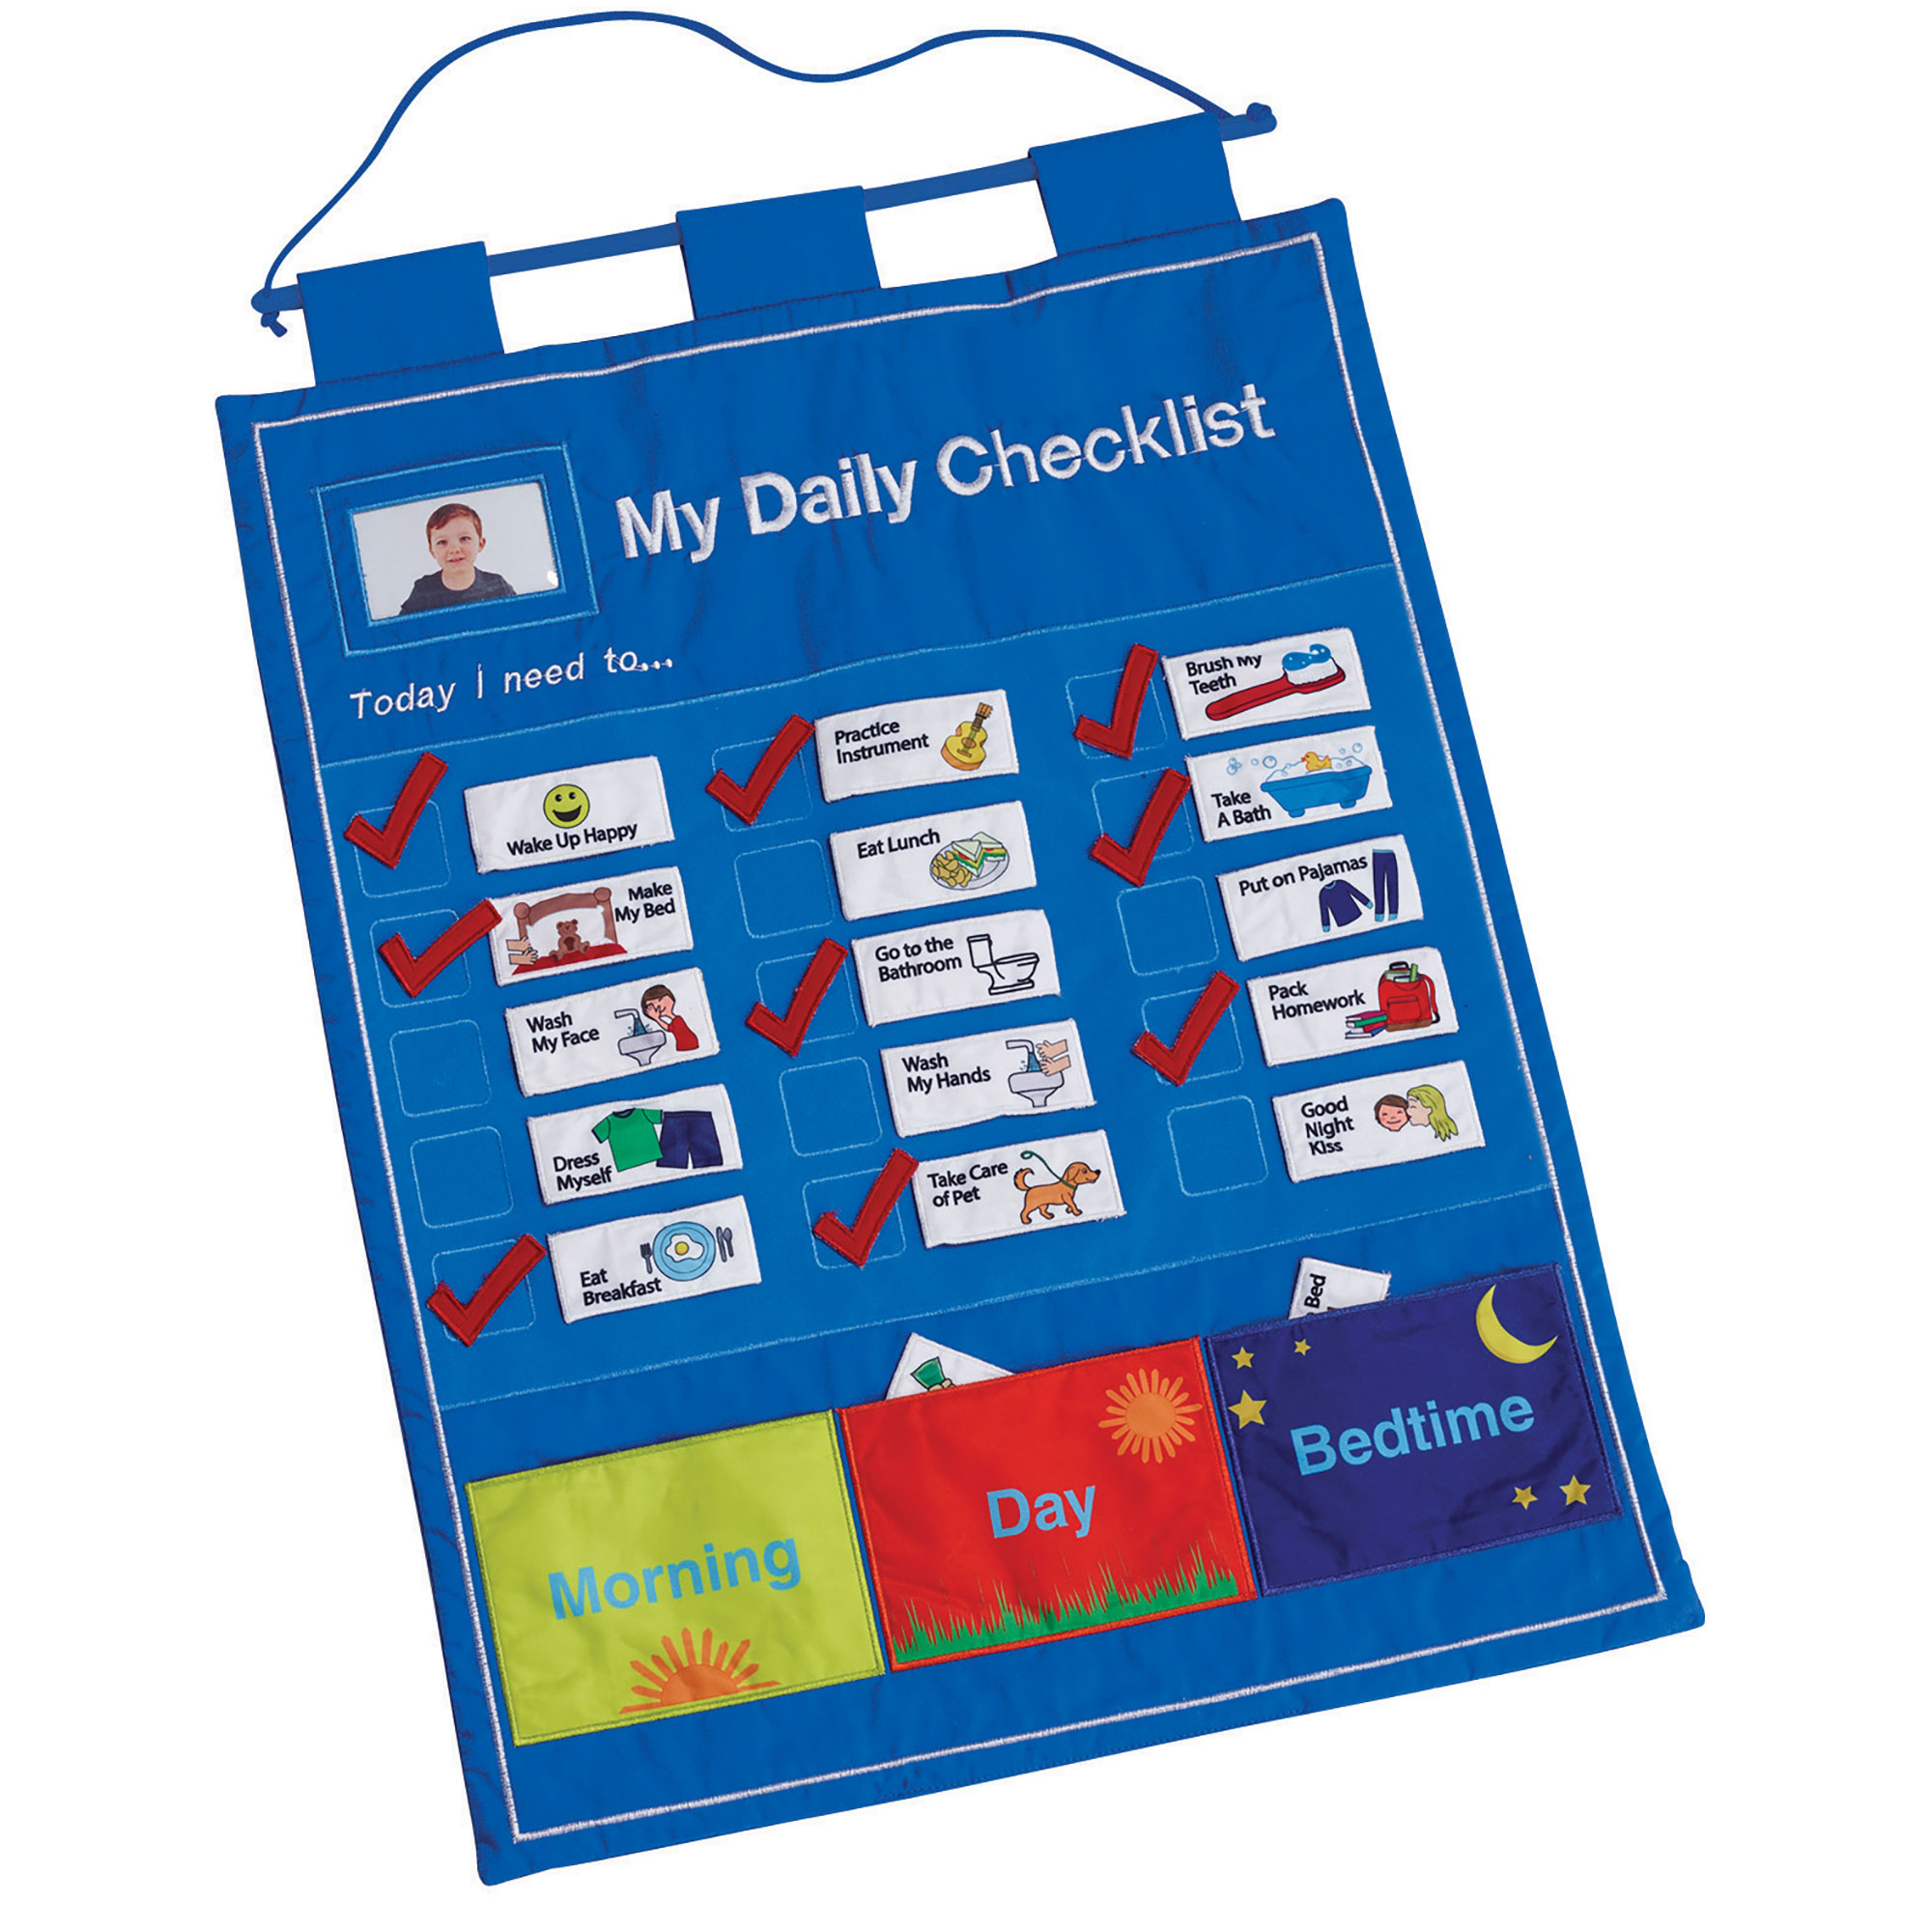 My Daily Checklist - Children's Fabric Chore Chart - by One Step Ahead